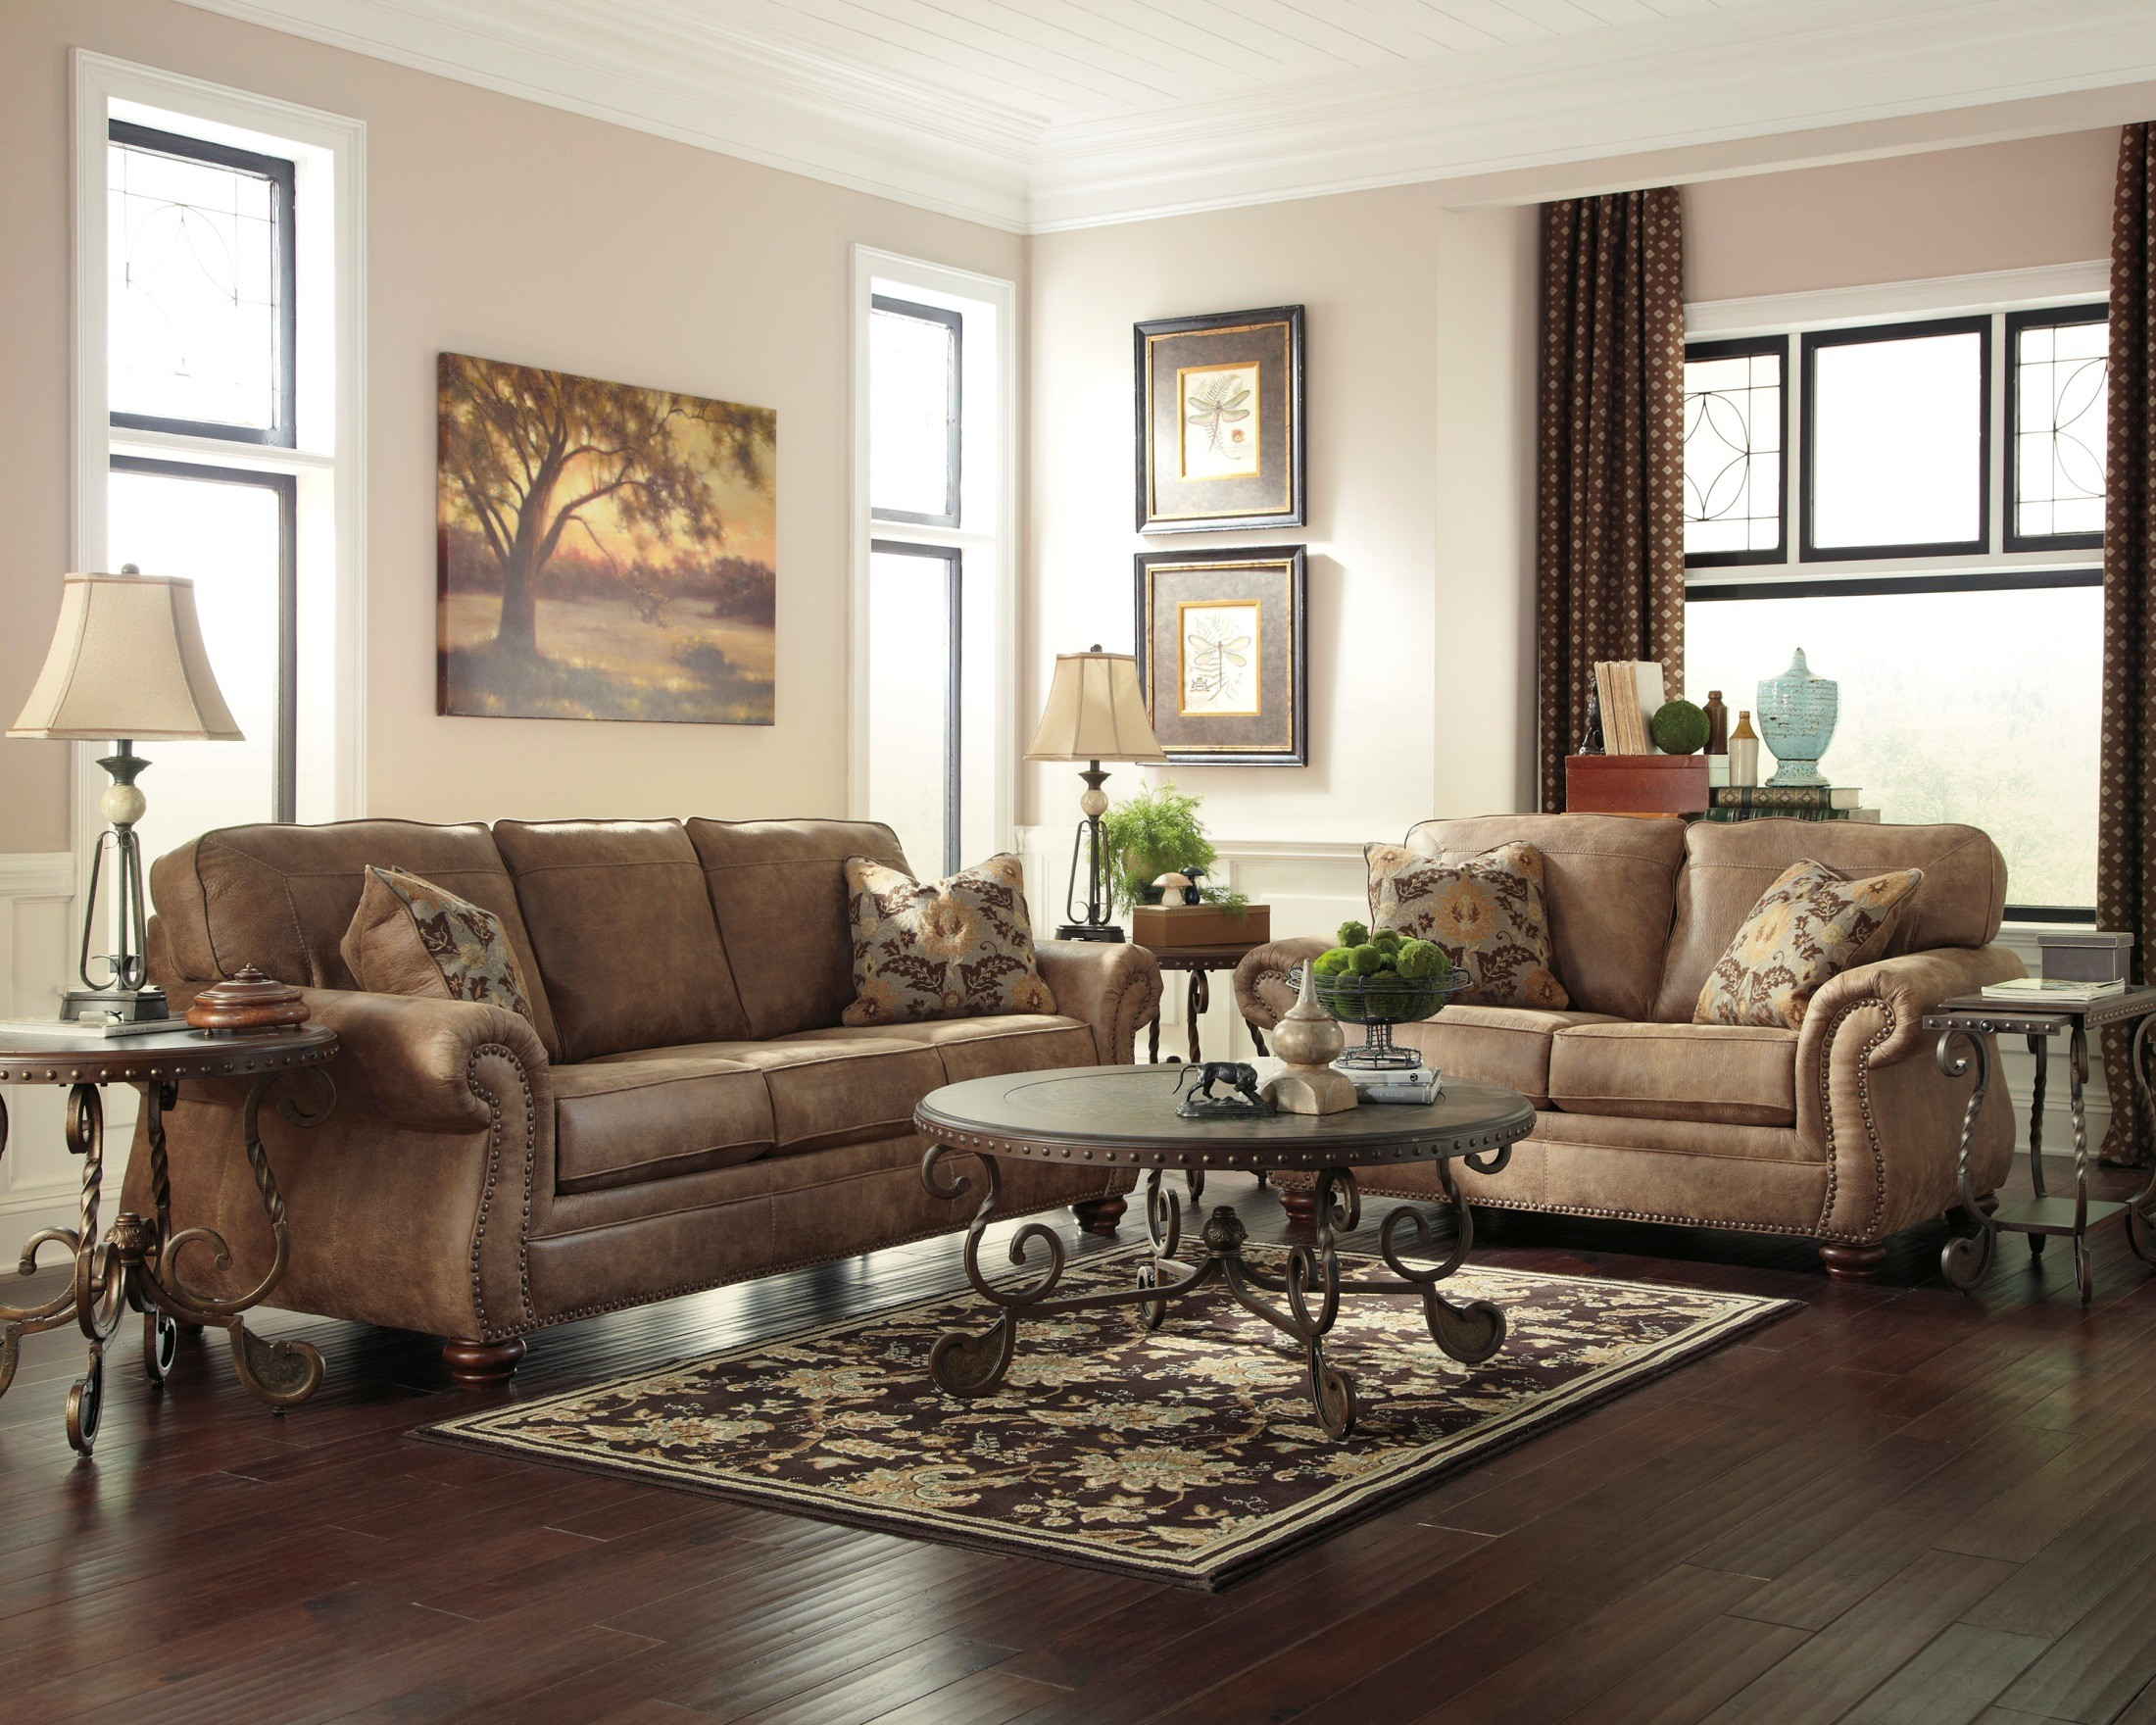 larkinhurst earth living room set from ashley 31901 38 35 coleman furniture. Black Bedroom Furniture Sets. Home Design Ideas